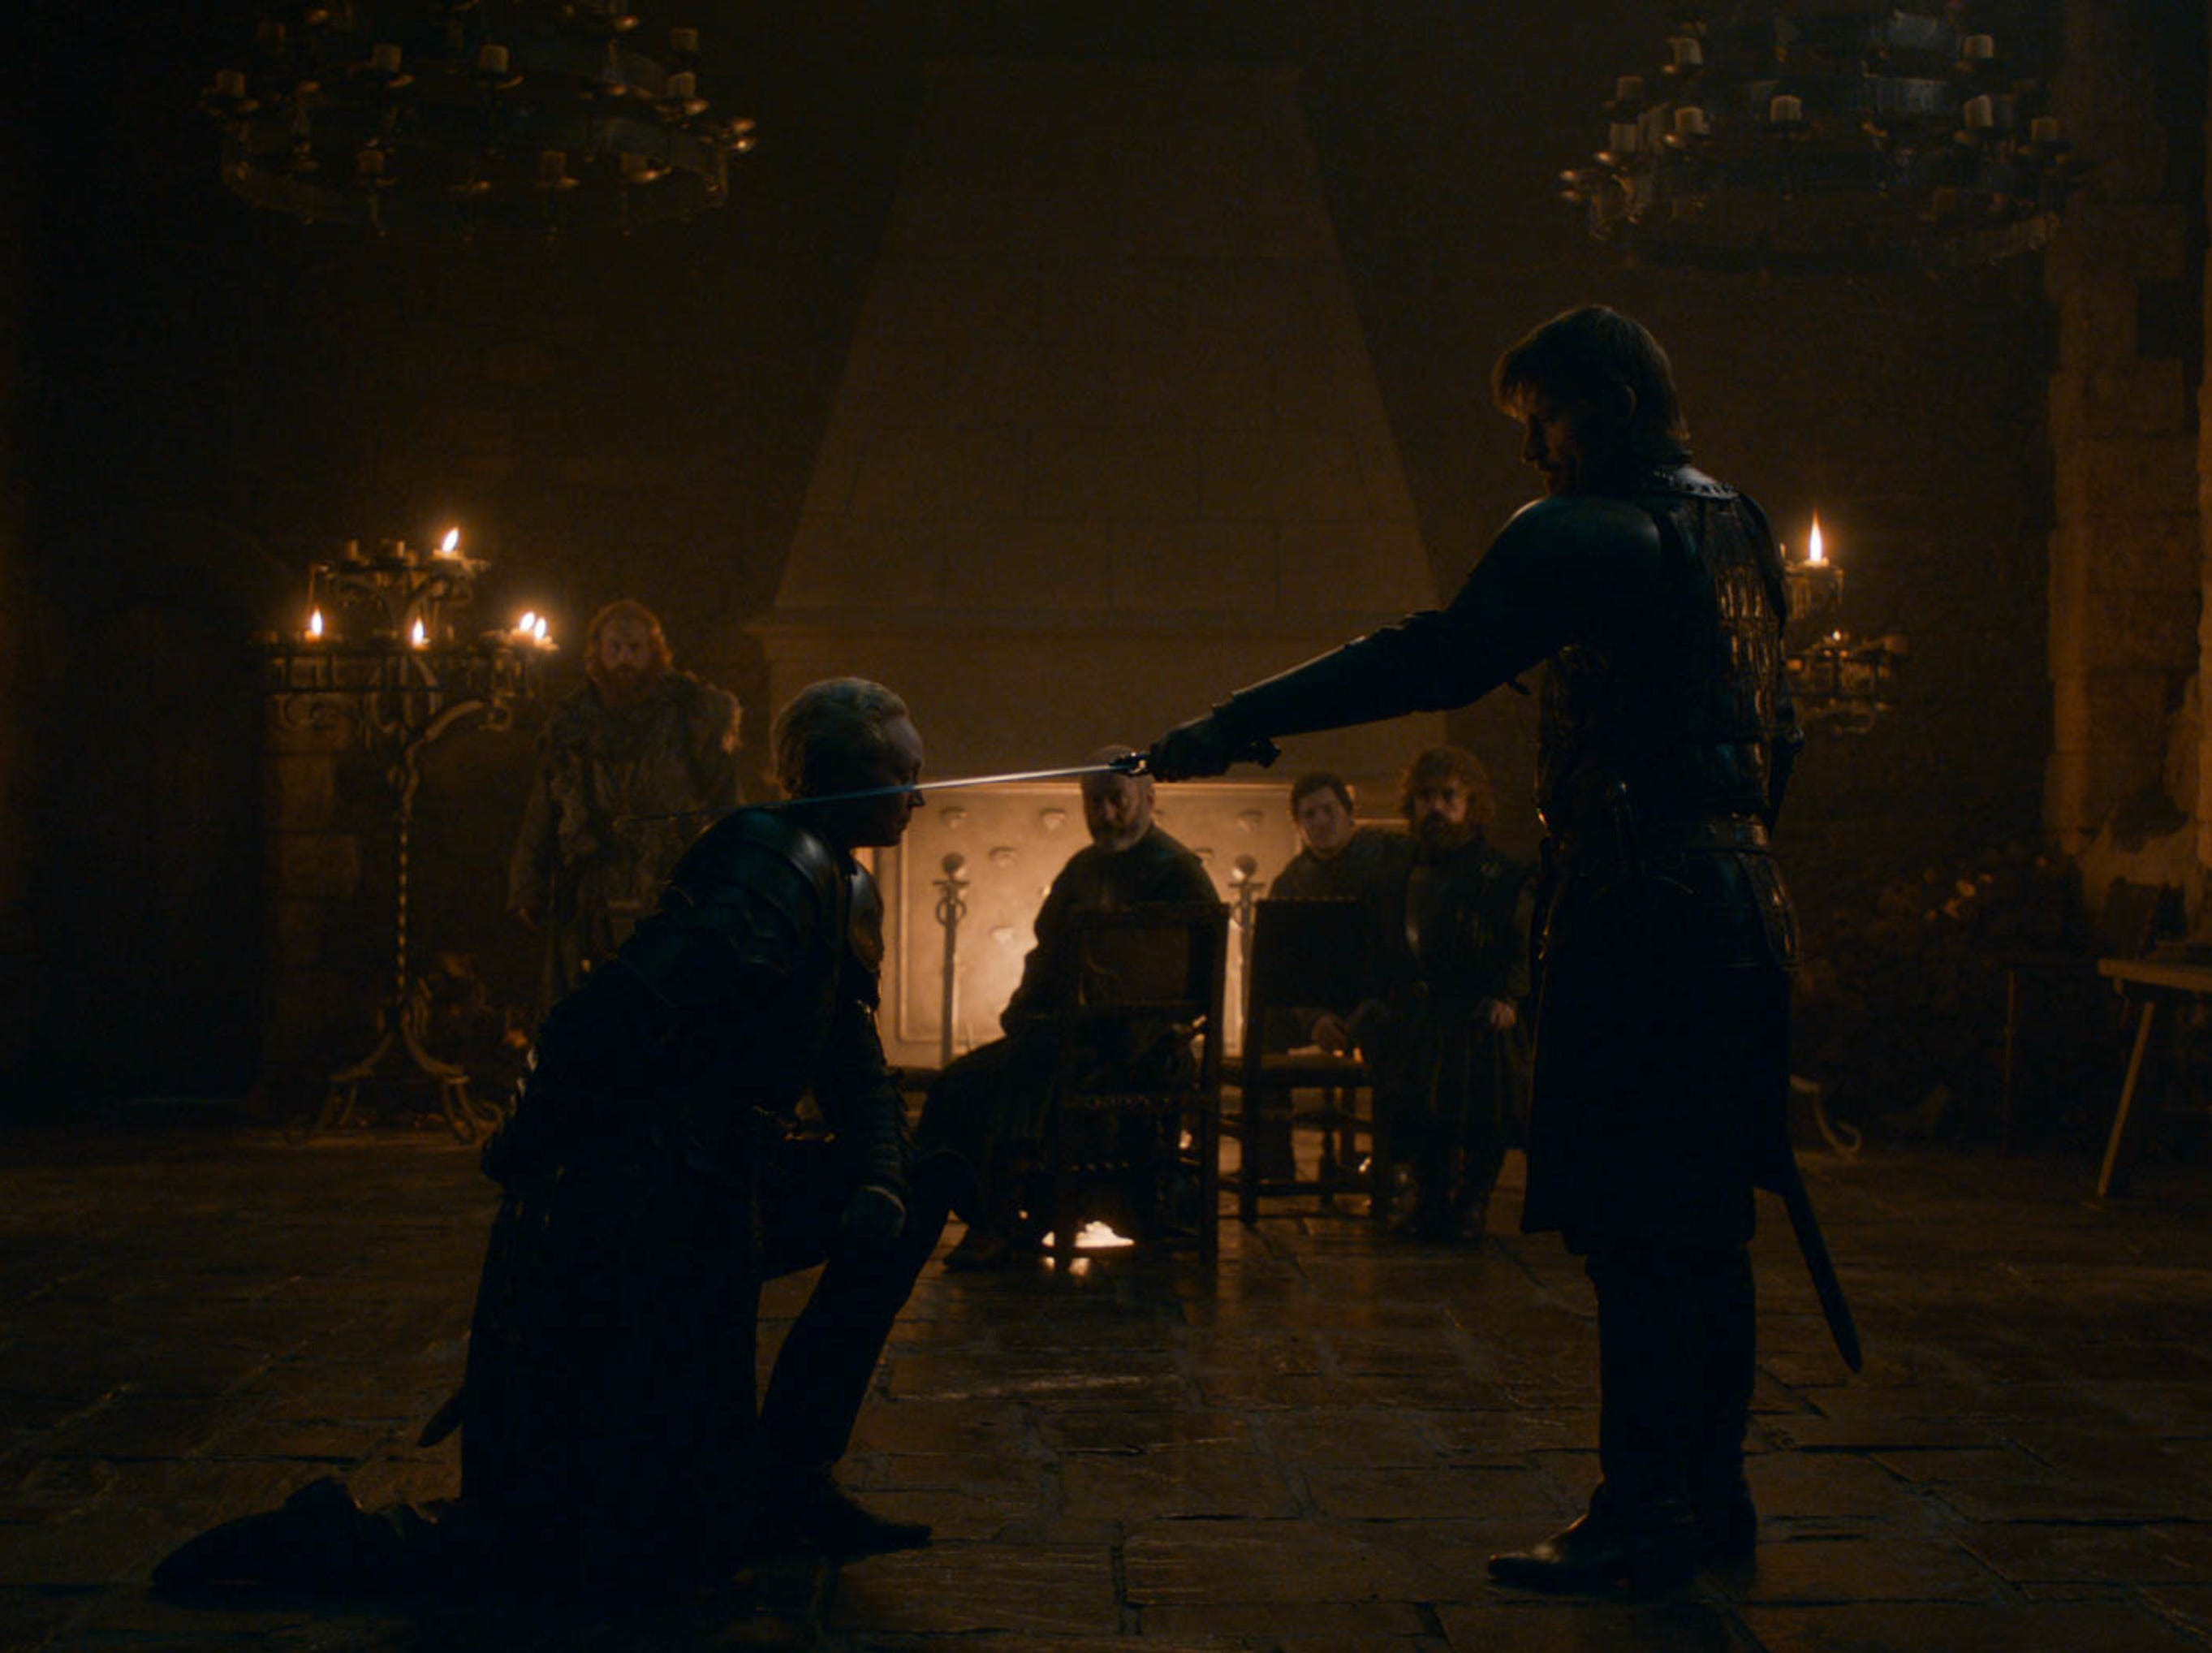 Gwendoline Christie as Brienne of Tarth, left, and Nikolaj Coster-Waldau as Jaime Lannister, both in the foreground, in 'Game of Thrones.'